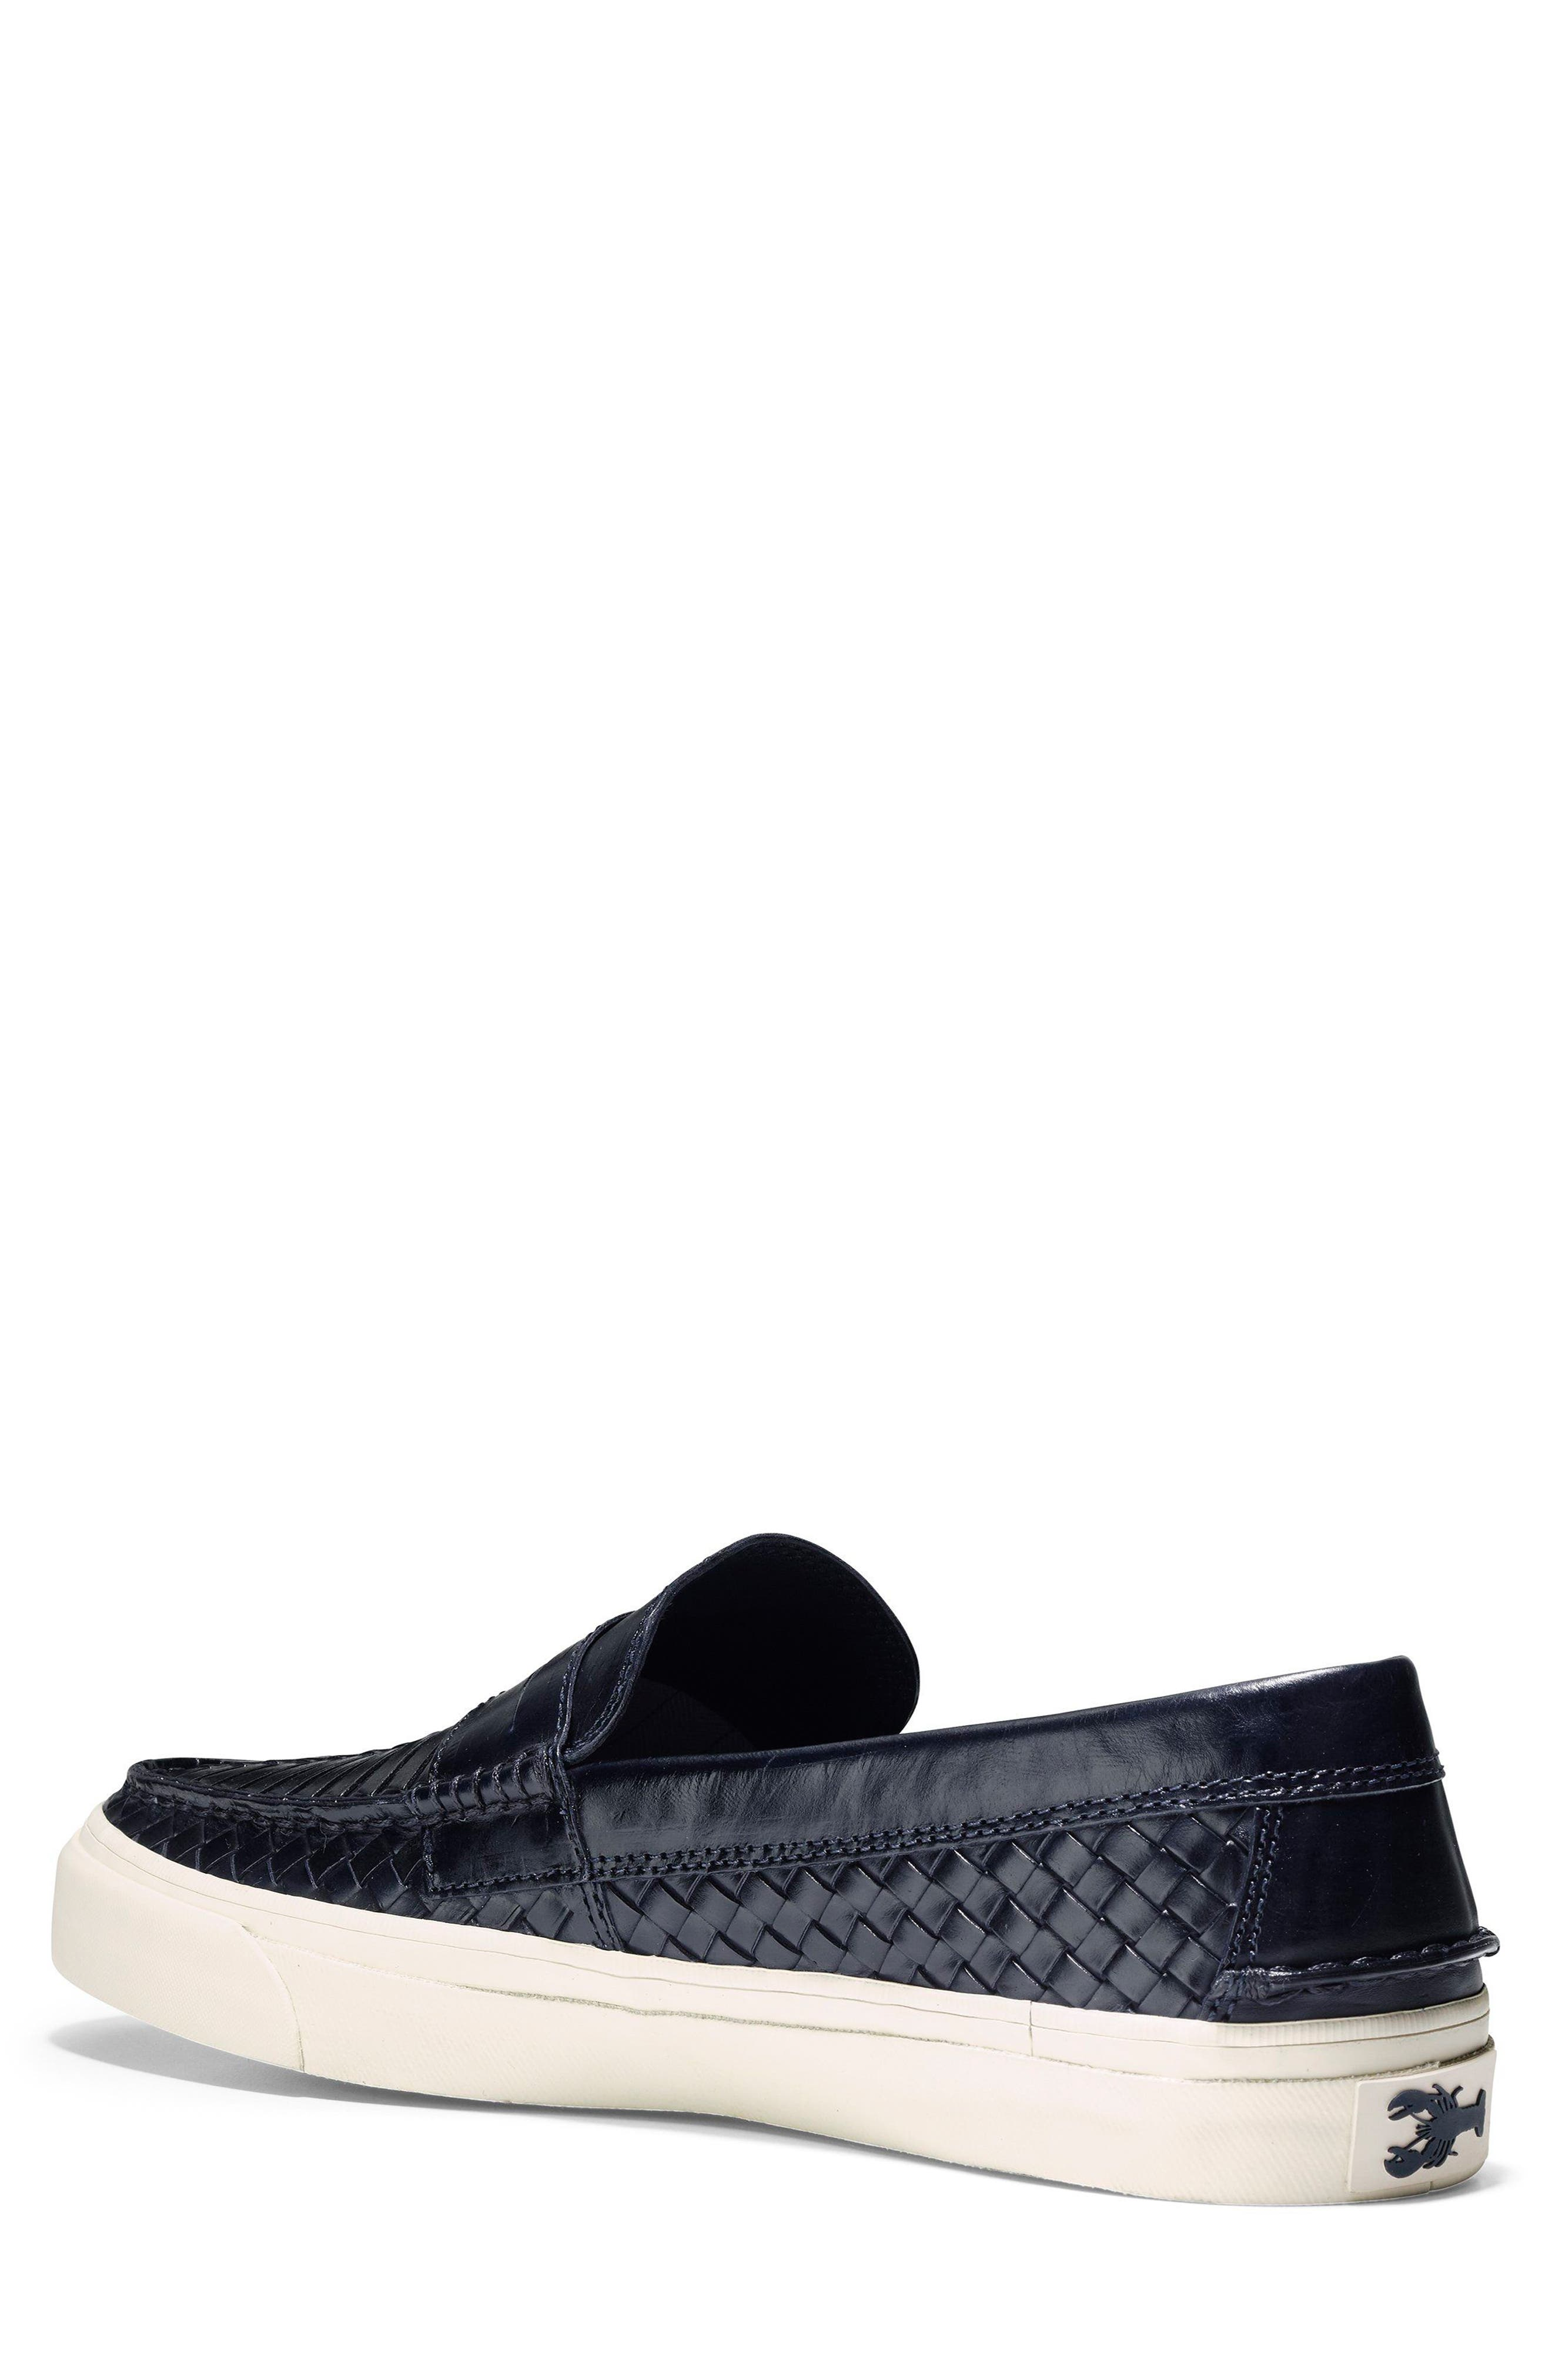 Alternate Image 2  - Cole Haan Pinch Weekender LX Huarache Loafer (Men)